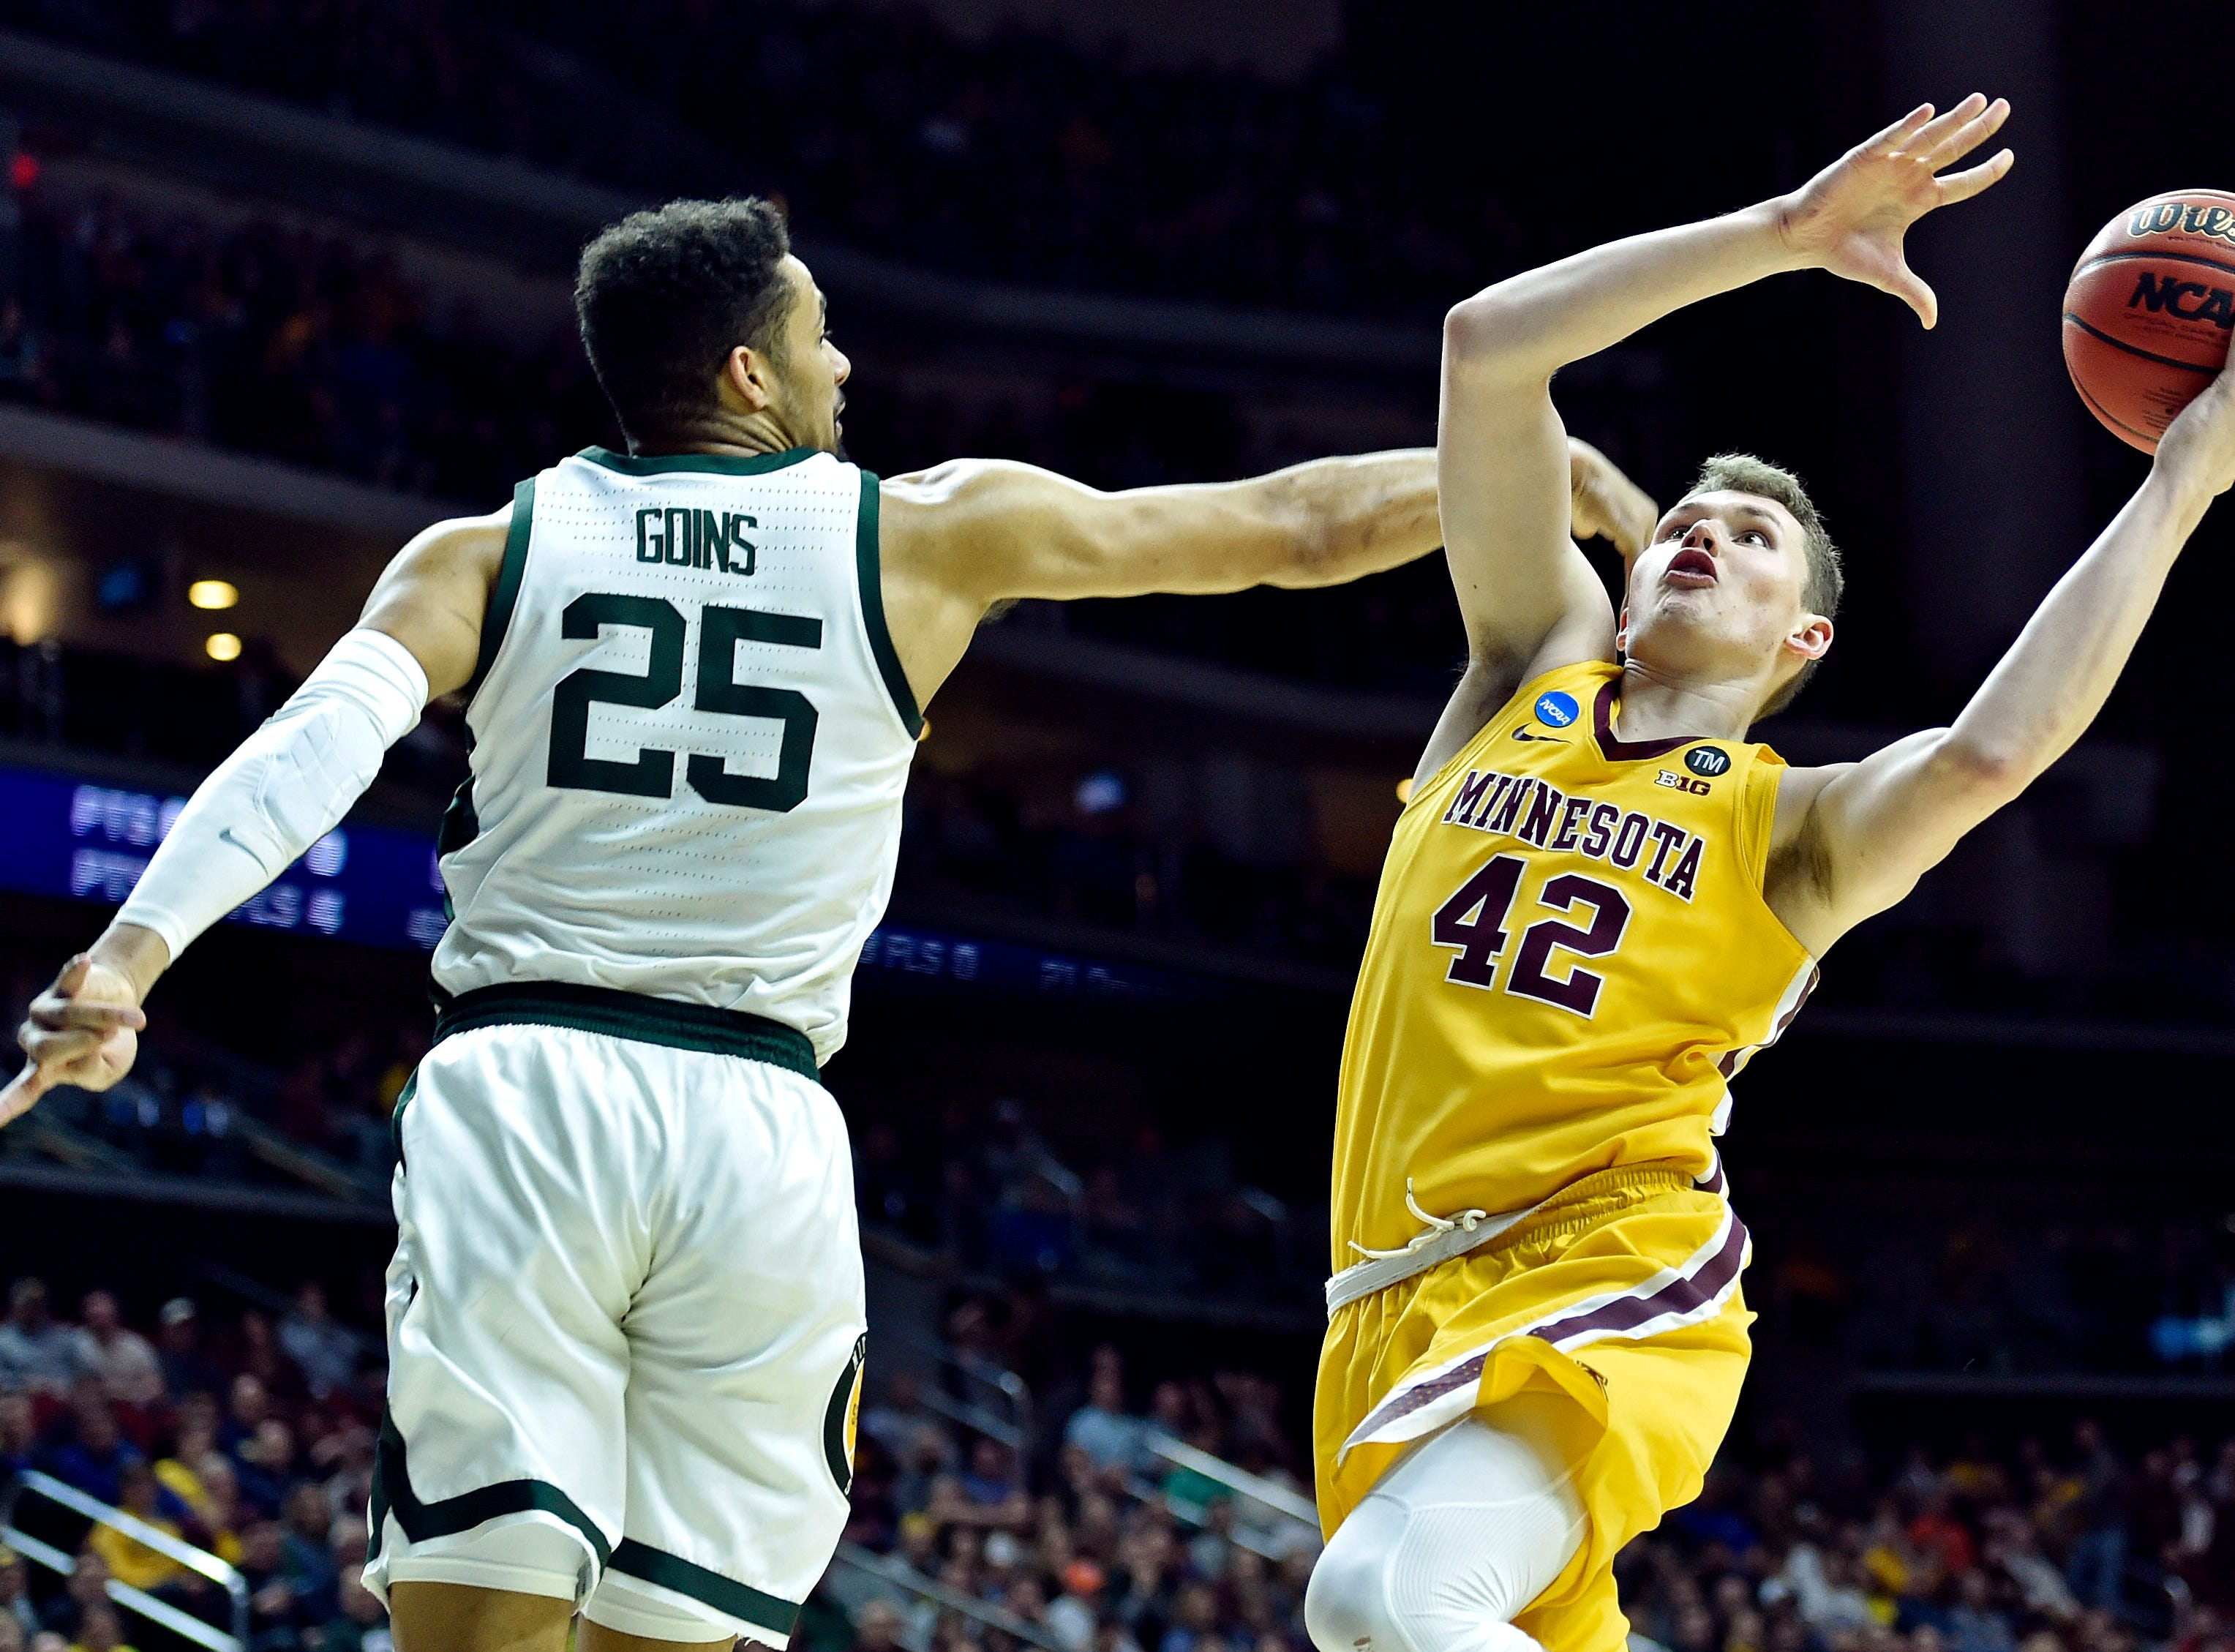 Mar 23, 2019; Des Moines, IA, United States; Minnesota Golden Gophers forward Michael Hurt (42) shoots the ball against Michigan State Spartans forward Kenny Goins (25) during the second half in the second round of the 2019 NCAA Tournament at Wells Fargo Arena. Mandatory Credit: Jeffrey Becker-USA TODAY Sports